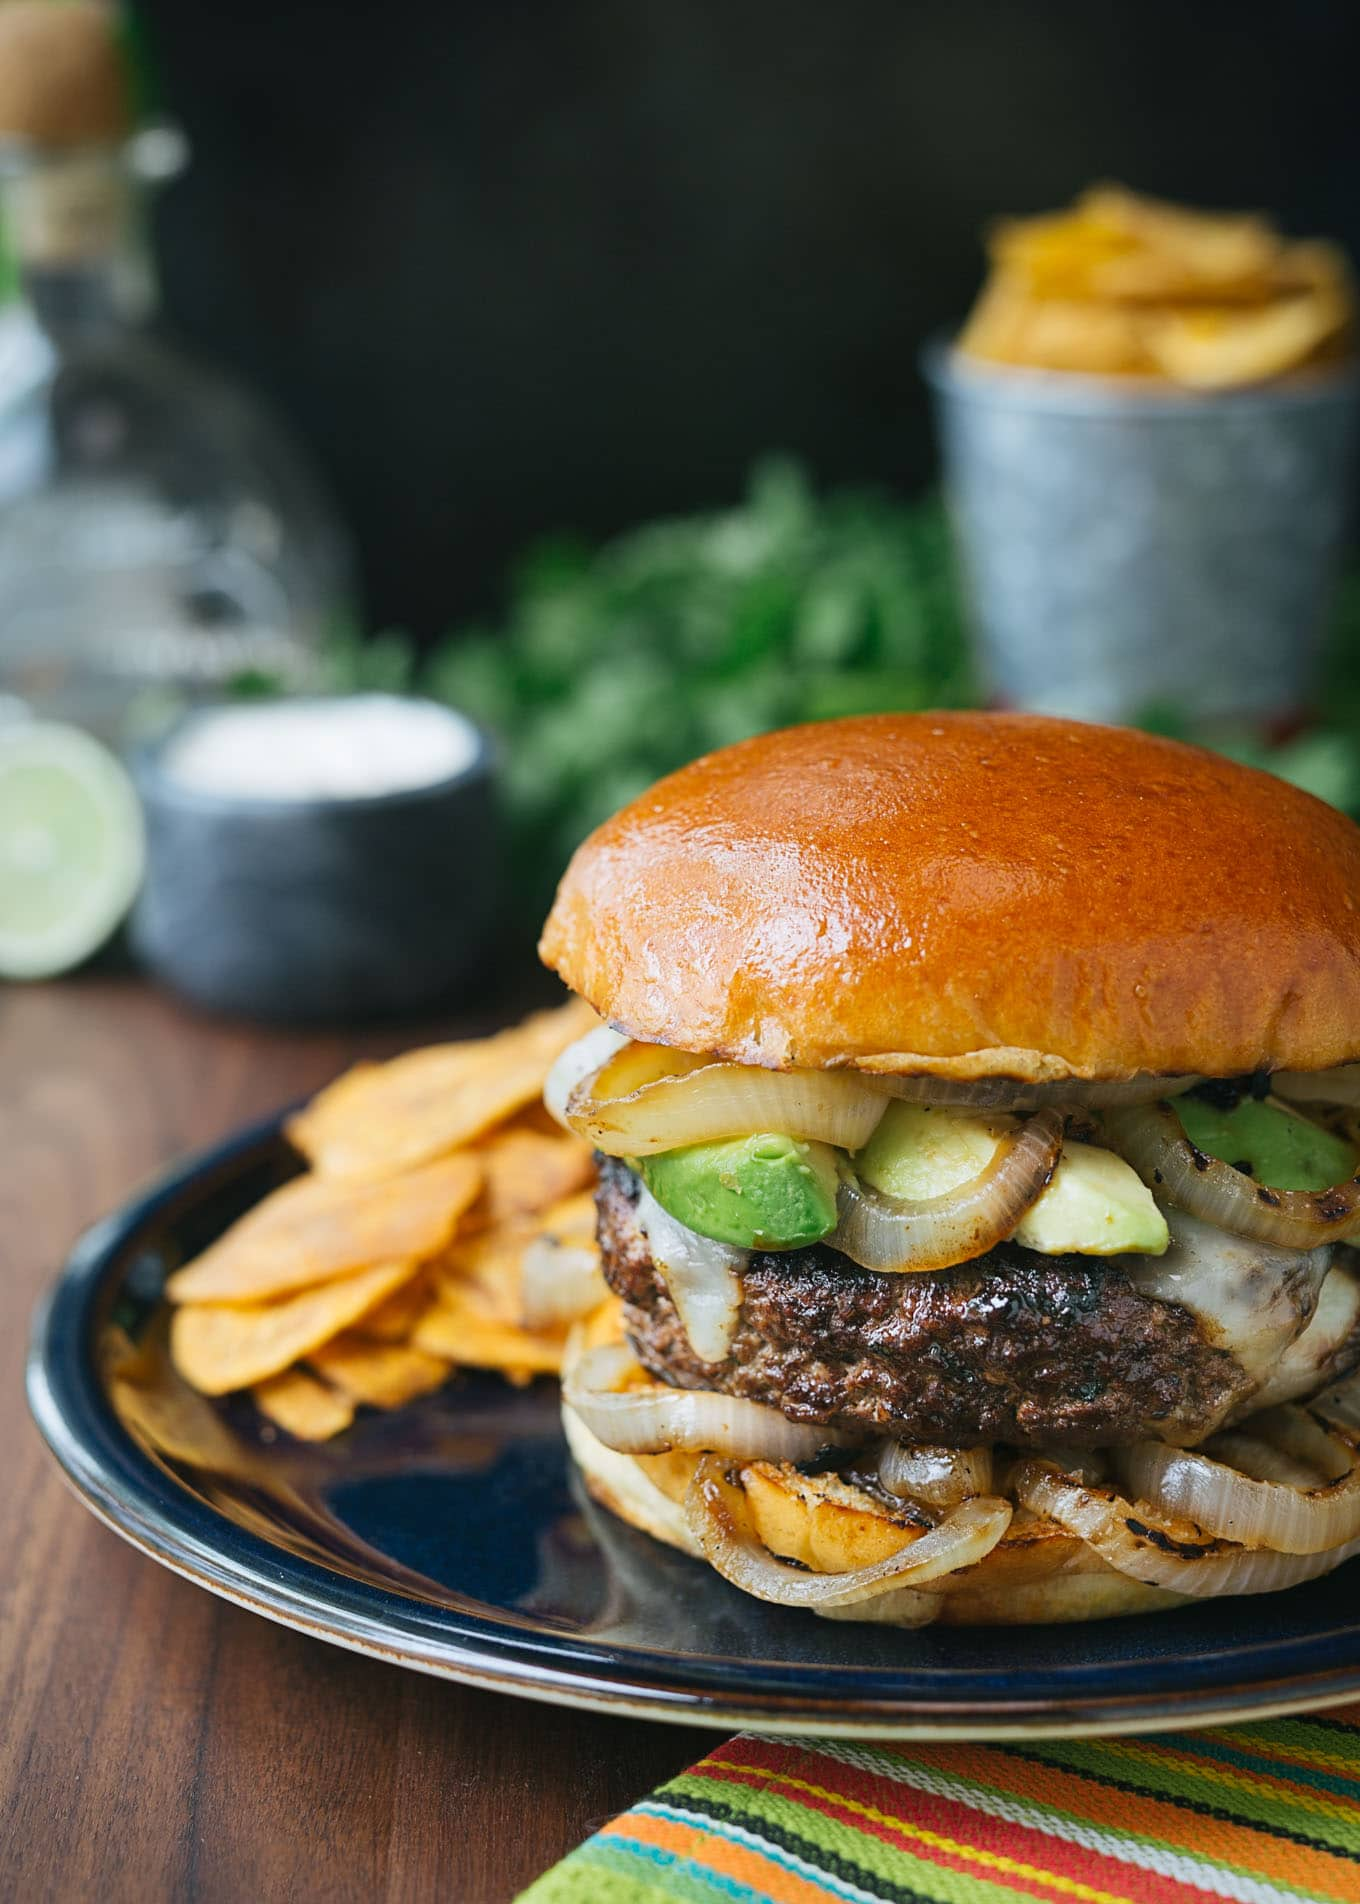 Gourmet Burger Recipe Mojo Beef Burgers With Tequila Lime Aioli Striped Spatula